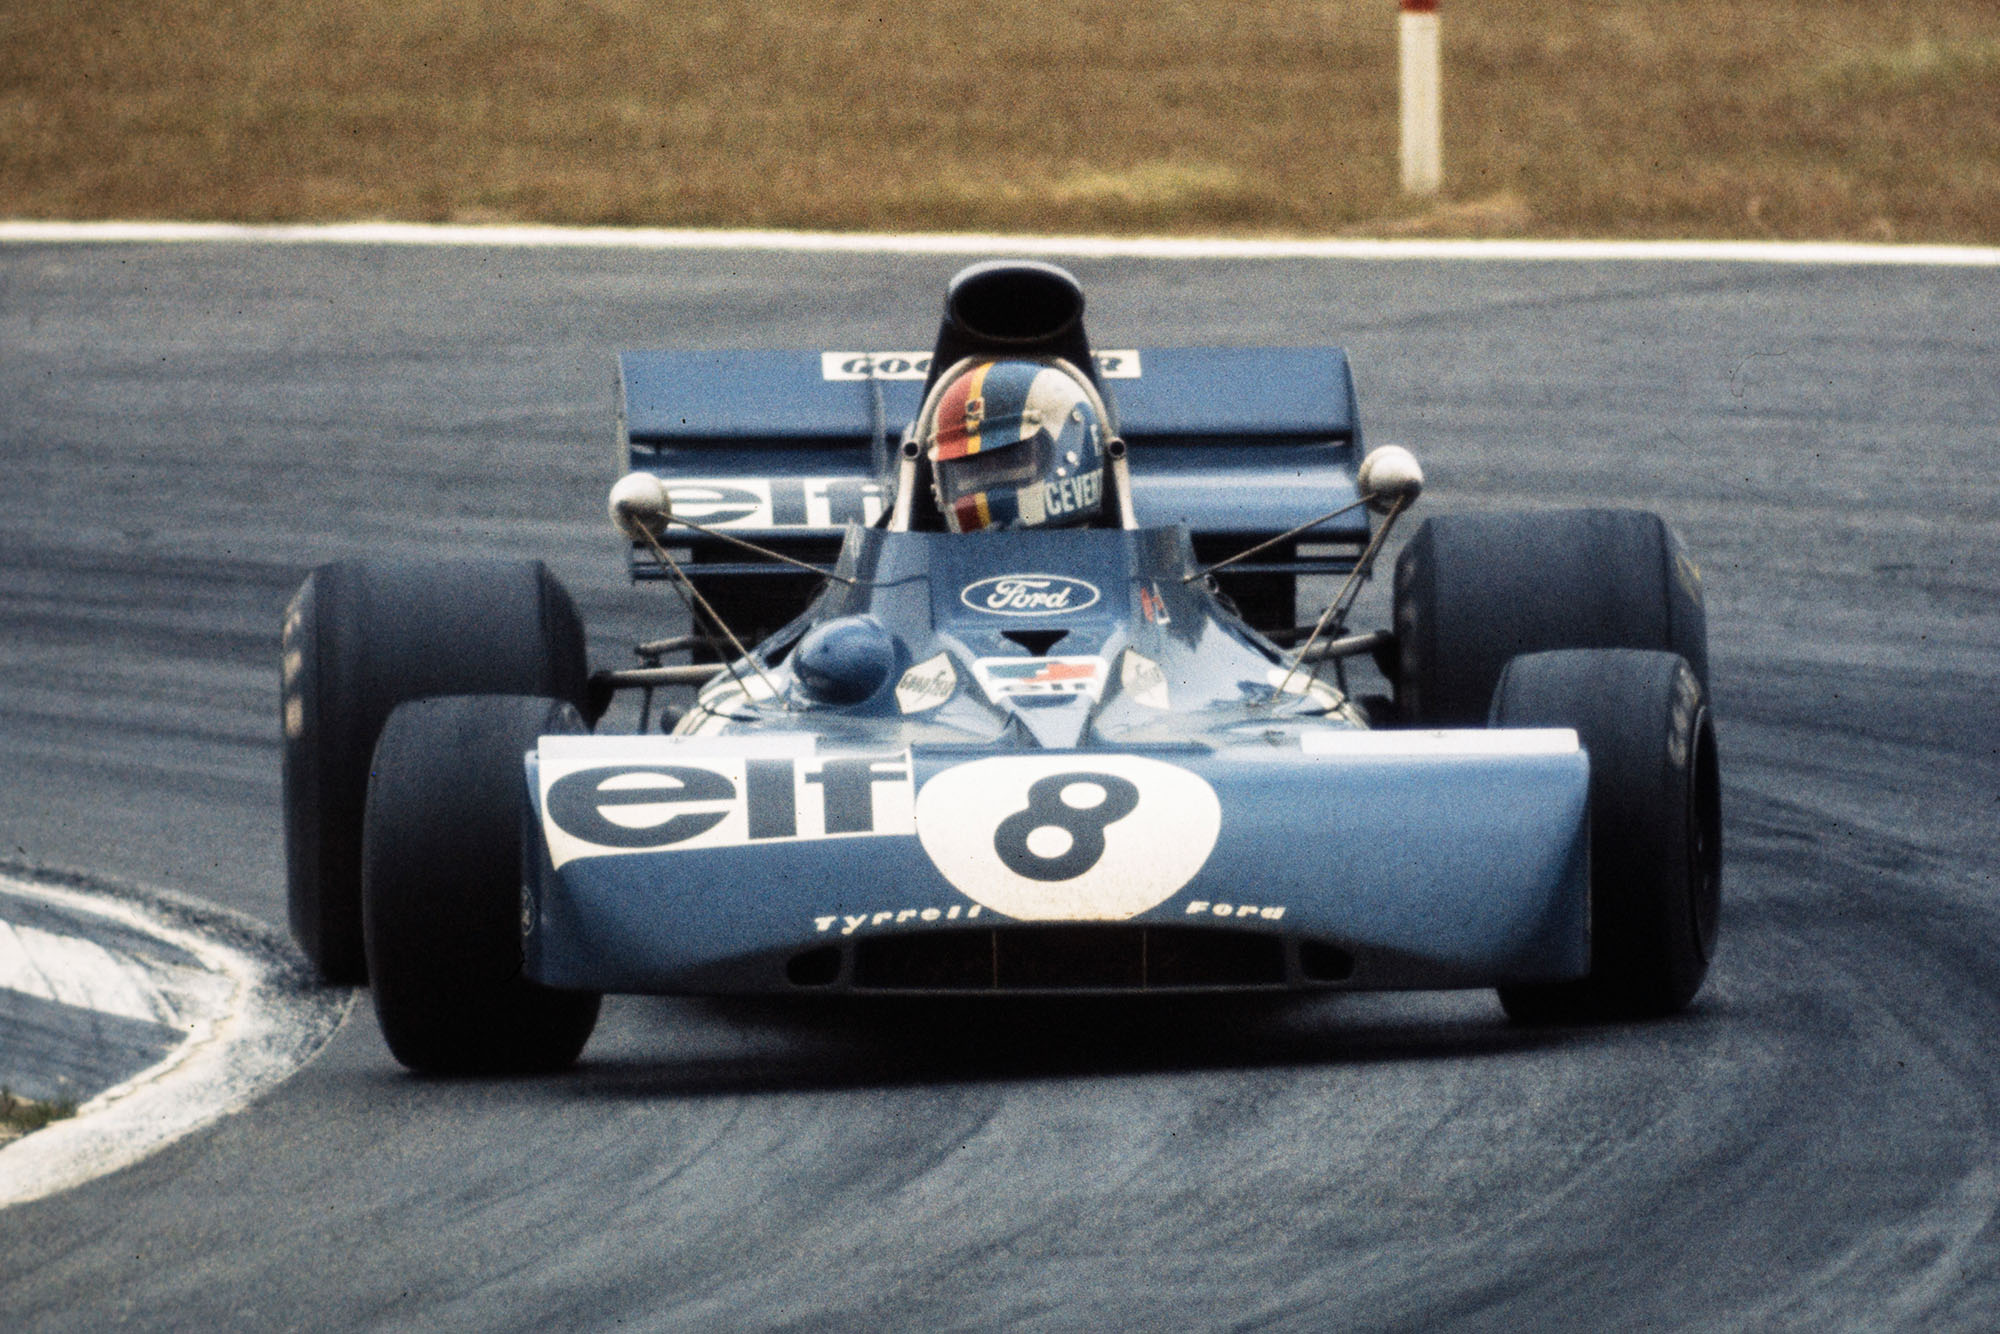 Francois Cevert in his Tyrrell at the 1972 Belgian Grand Prix